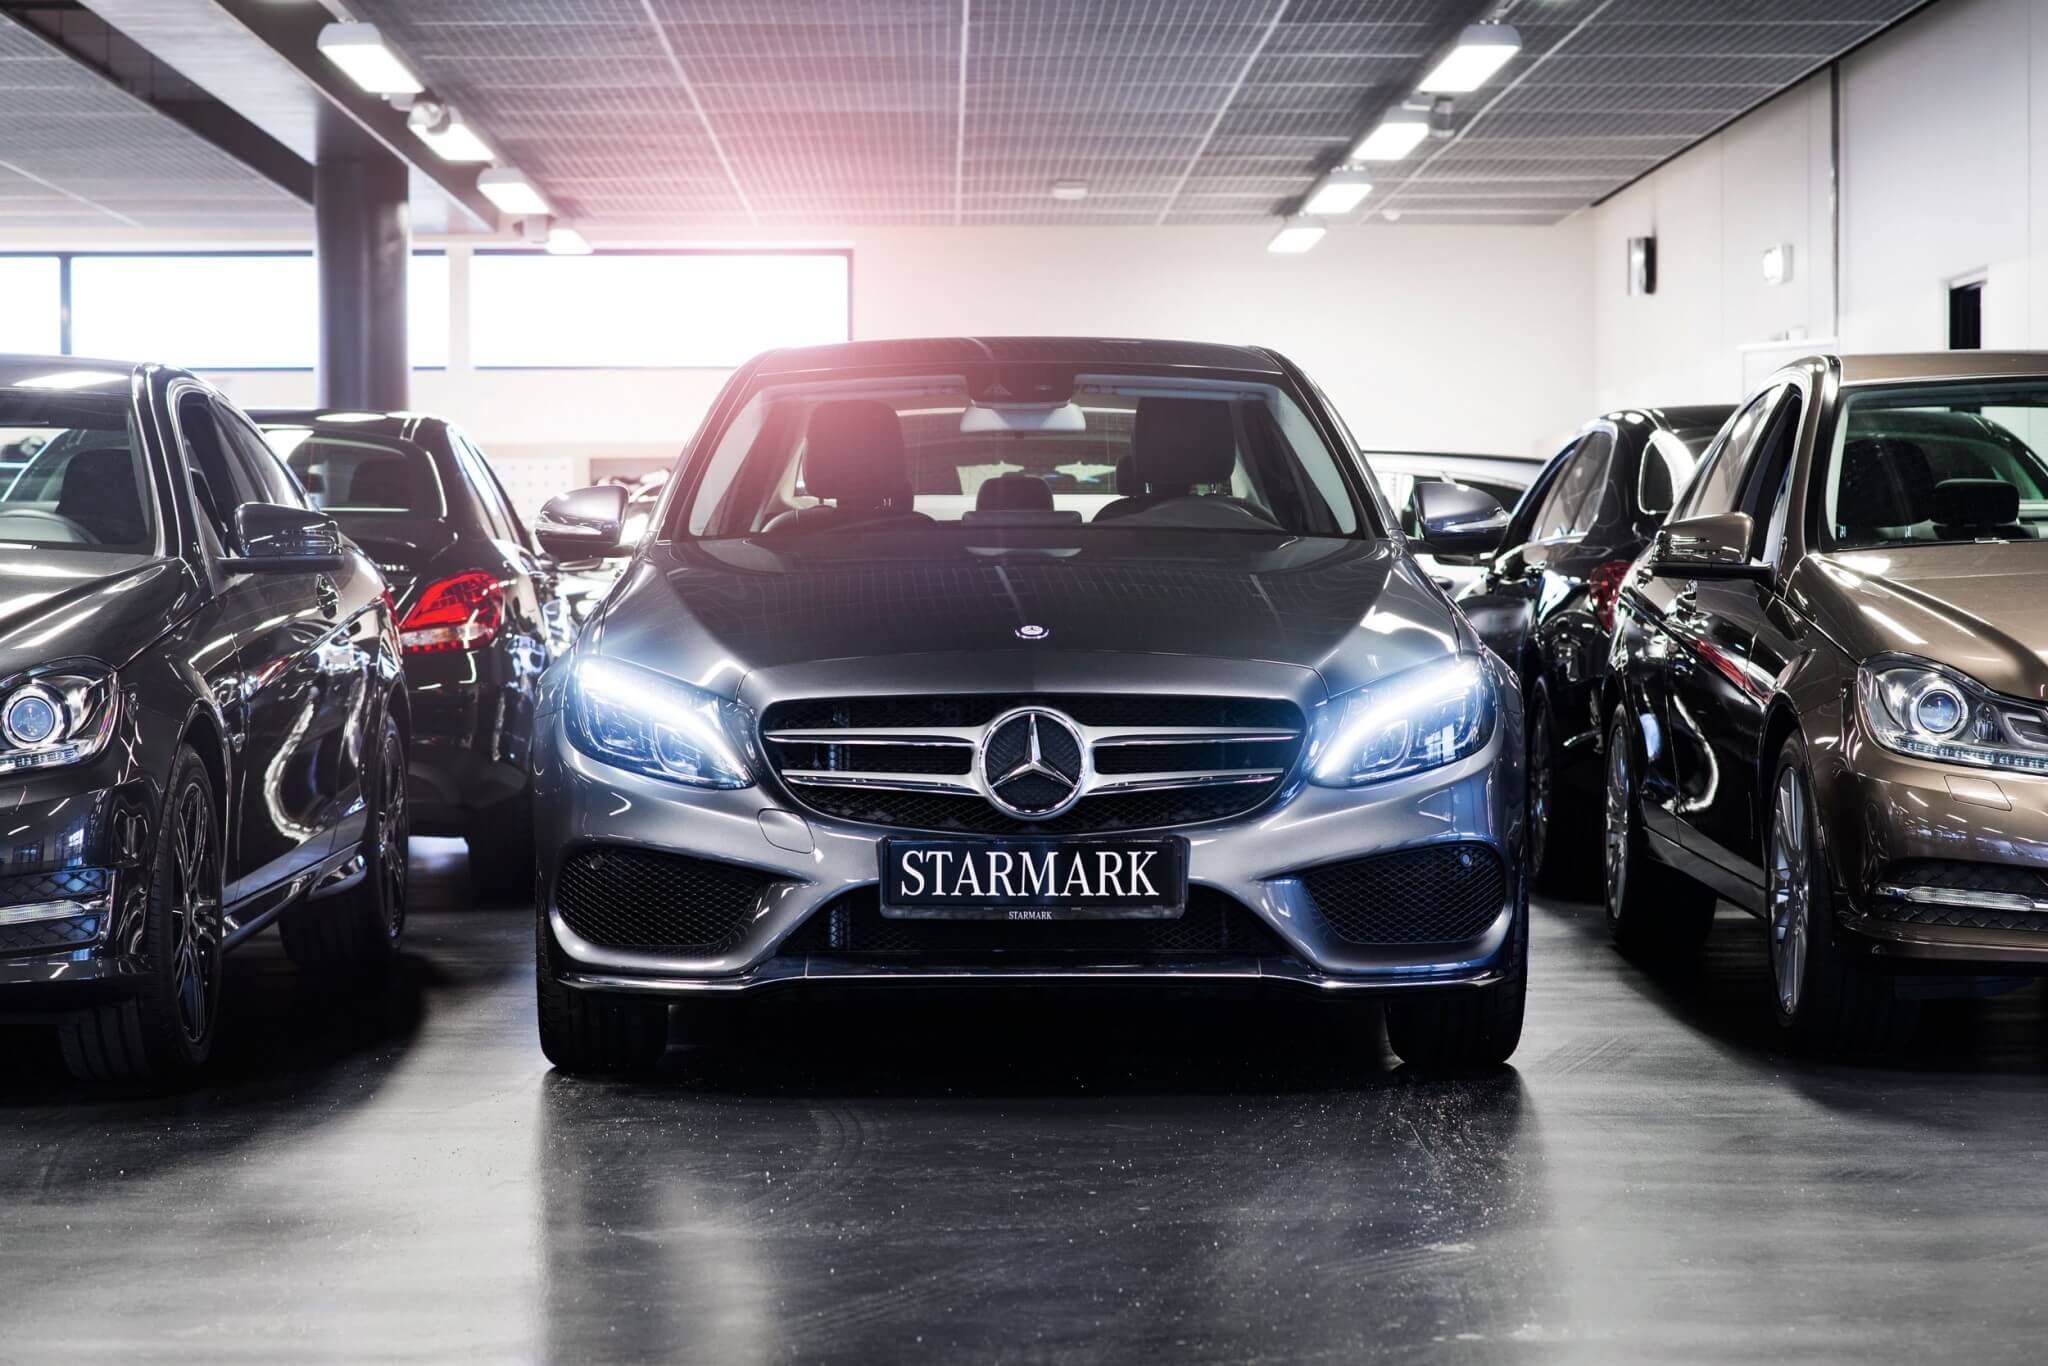 Starmark Denmark 01, photos by We Shoot Cars